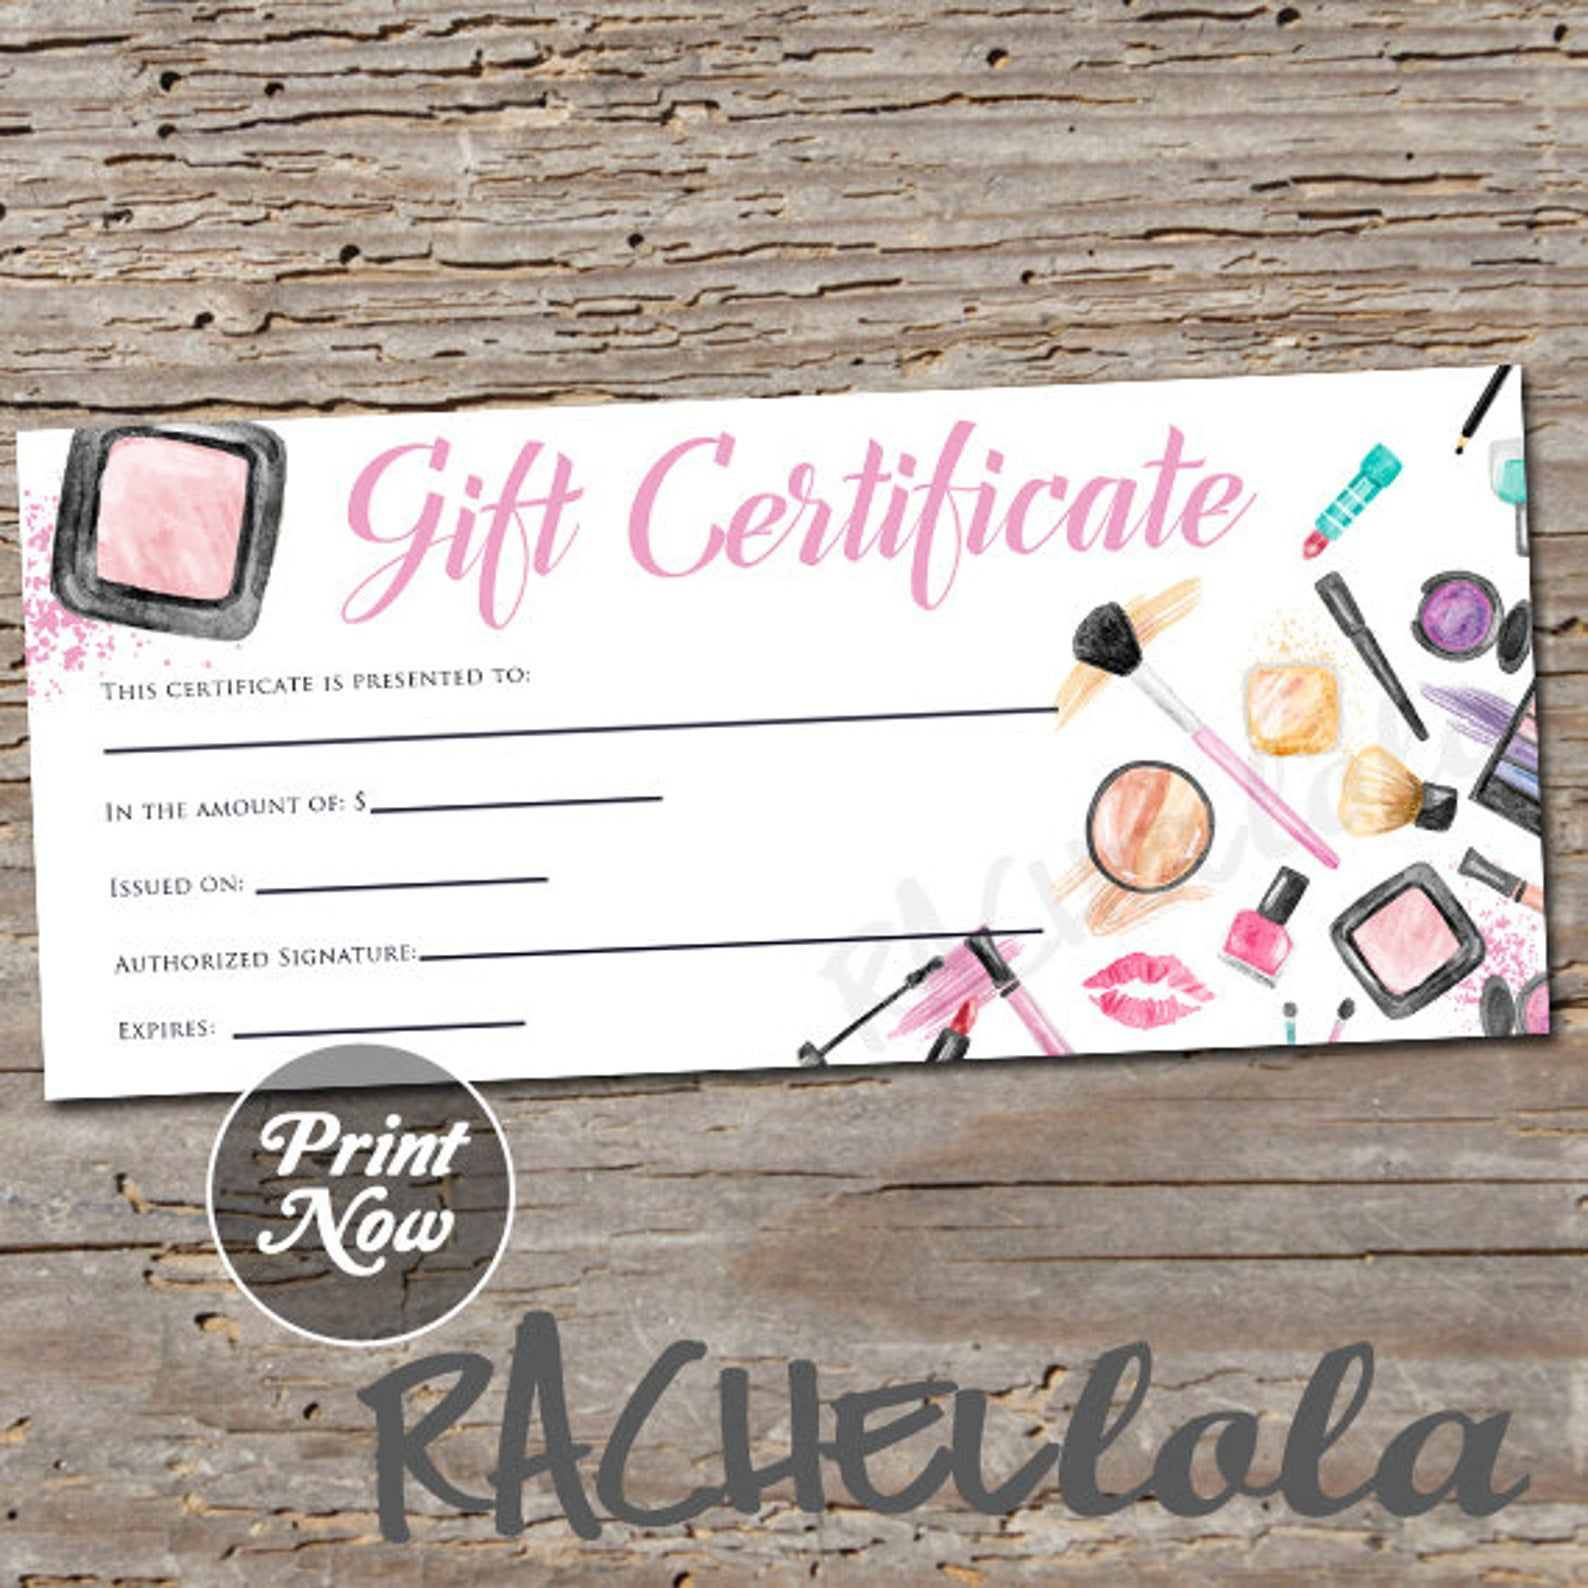 Gift Certificate Template Editable Gift Card Gift Voucher Etsy Gift Certificate Template Salon Gifts Certificate Templates